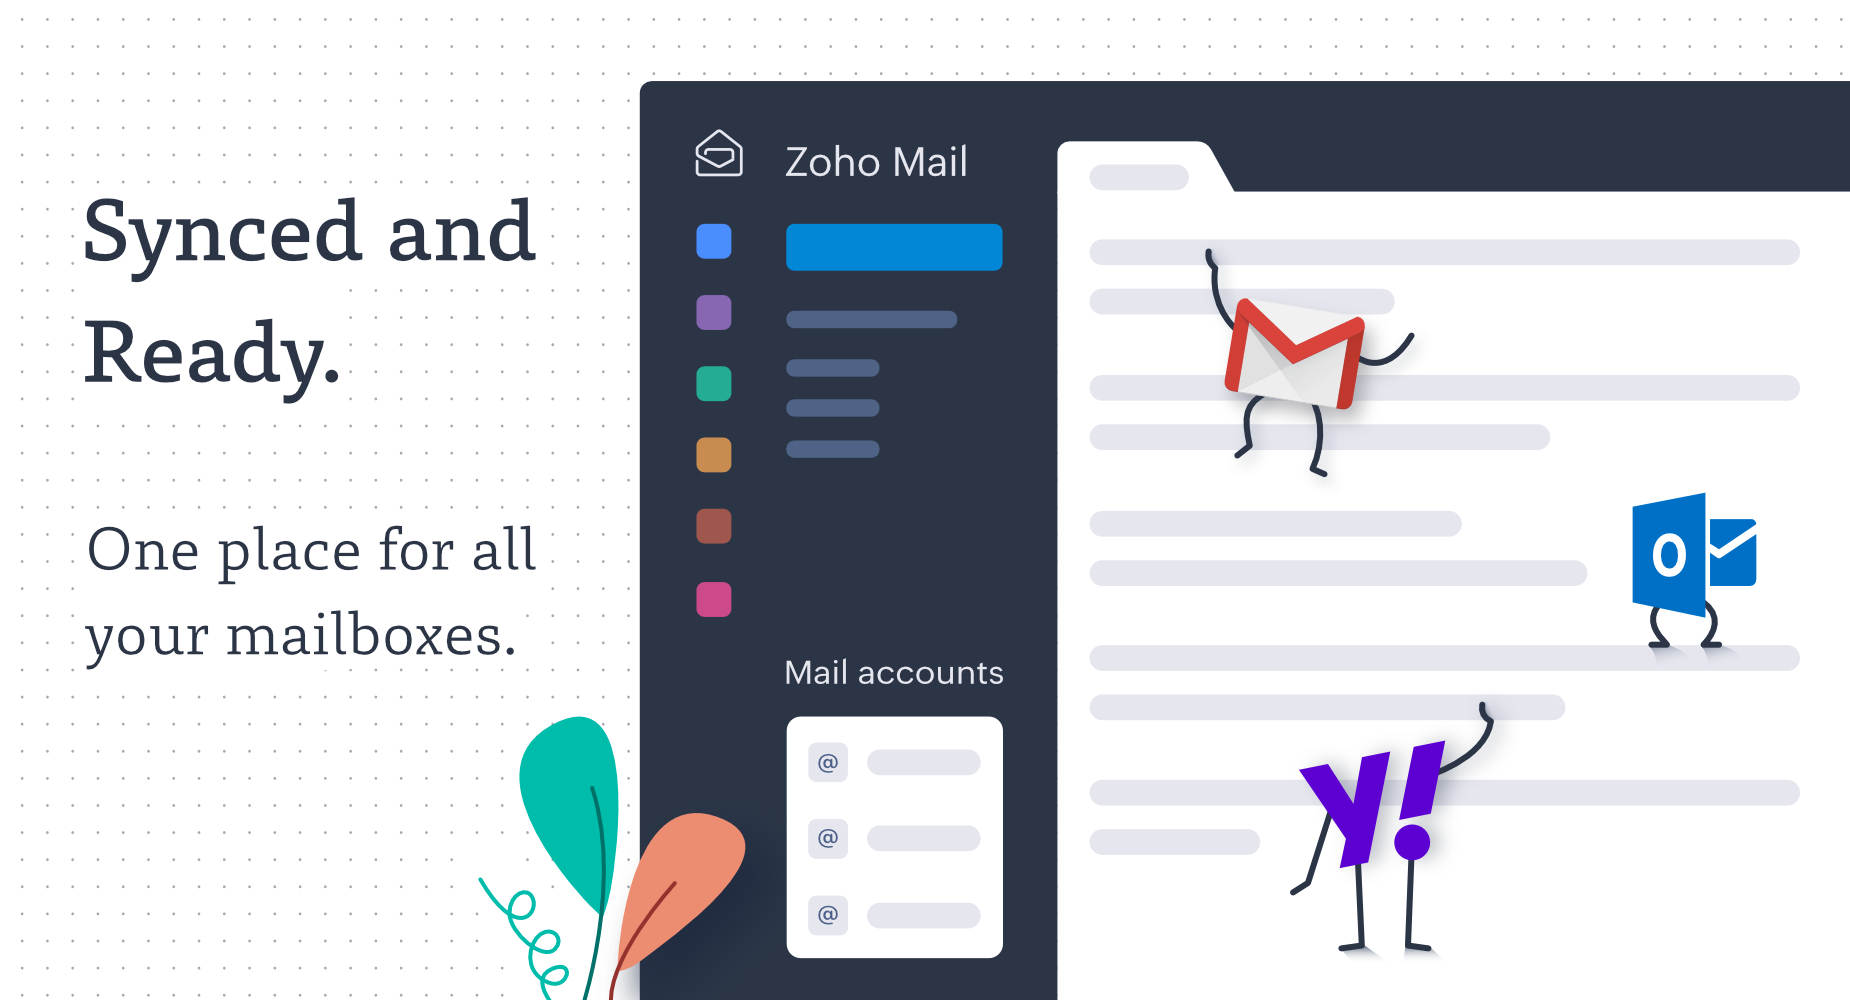 Announcing Zoho Mail as IMAP Client: One place for all your email accounts